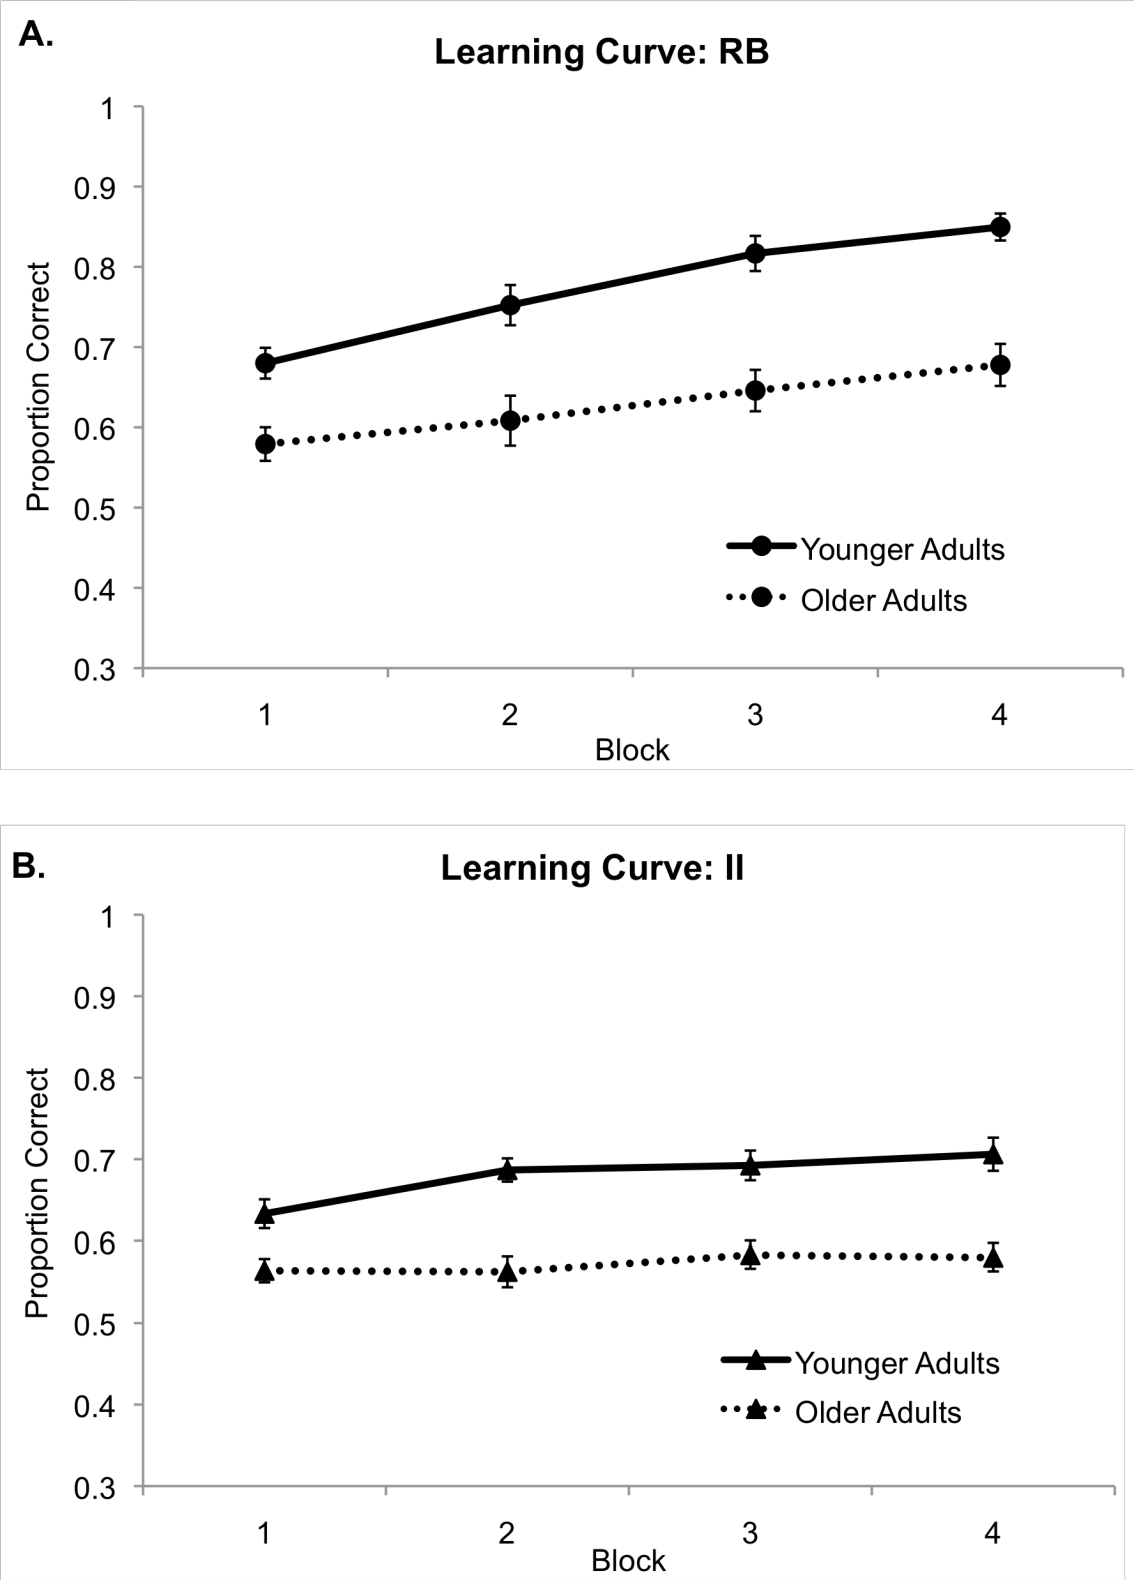 Figure 4.4: Categorization performance of younger adults and older adults across learning blocks in (A) the RB category set and (B) the II category set. Error bars denote the standard error of the mean.